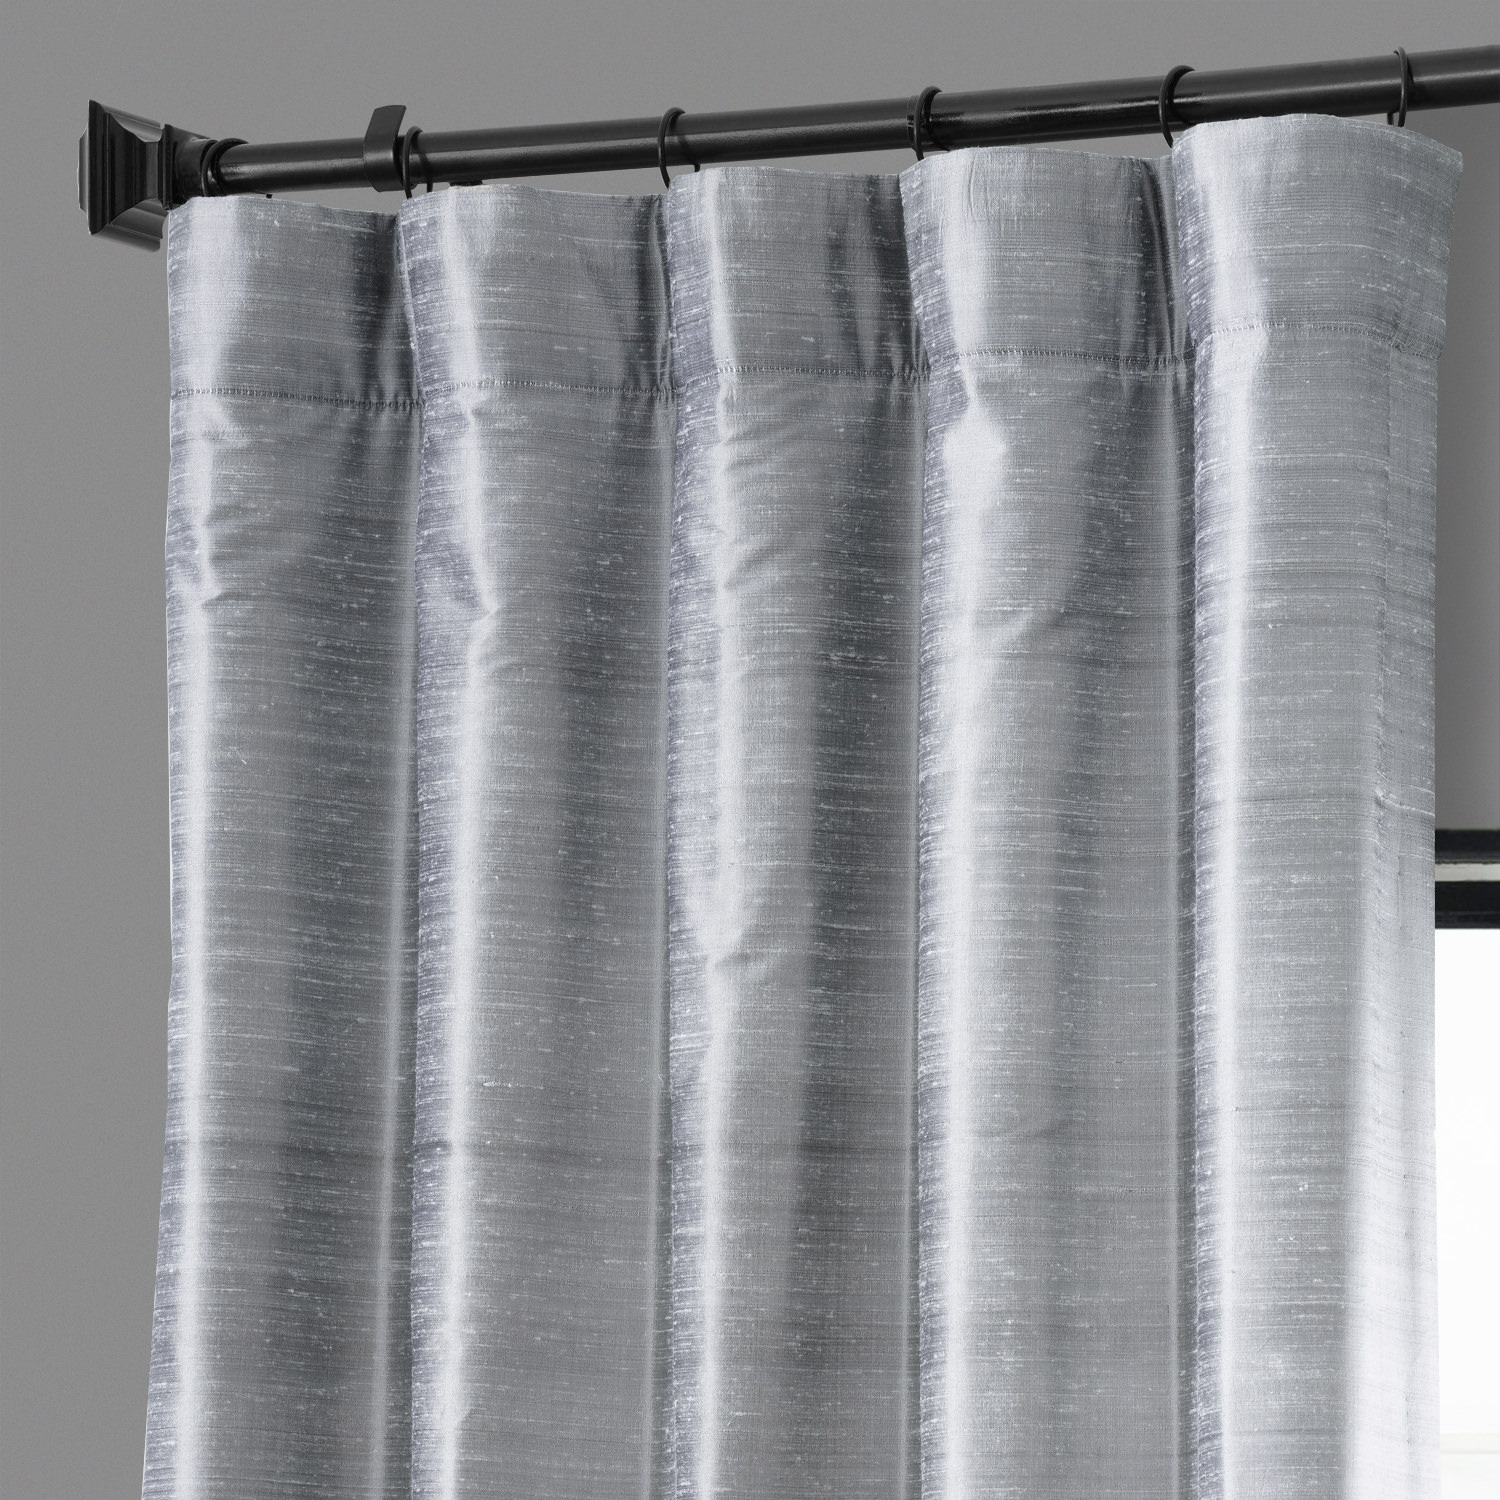 Mineral Grey Textured Dupioni Silk Curtain